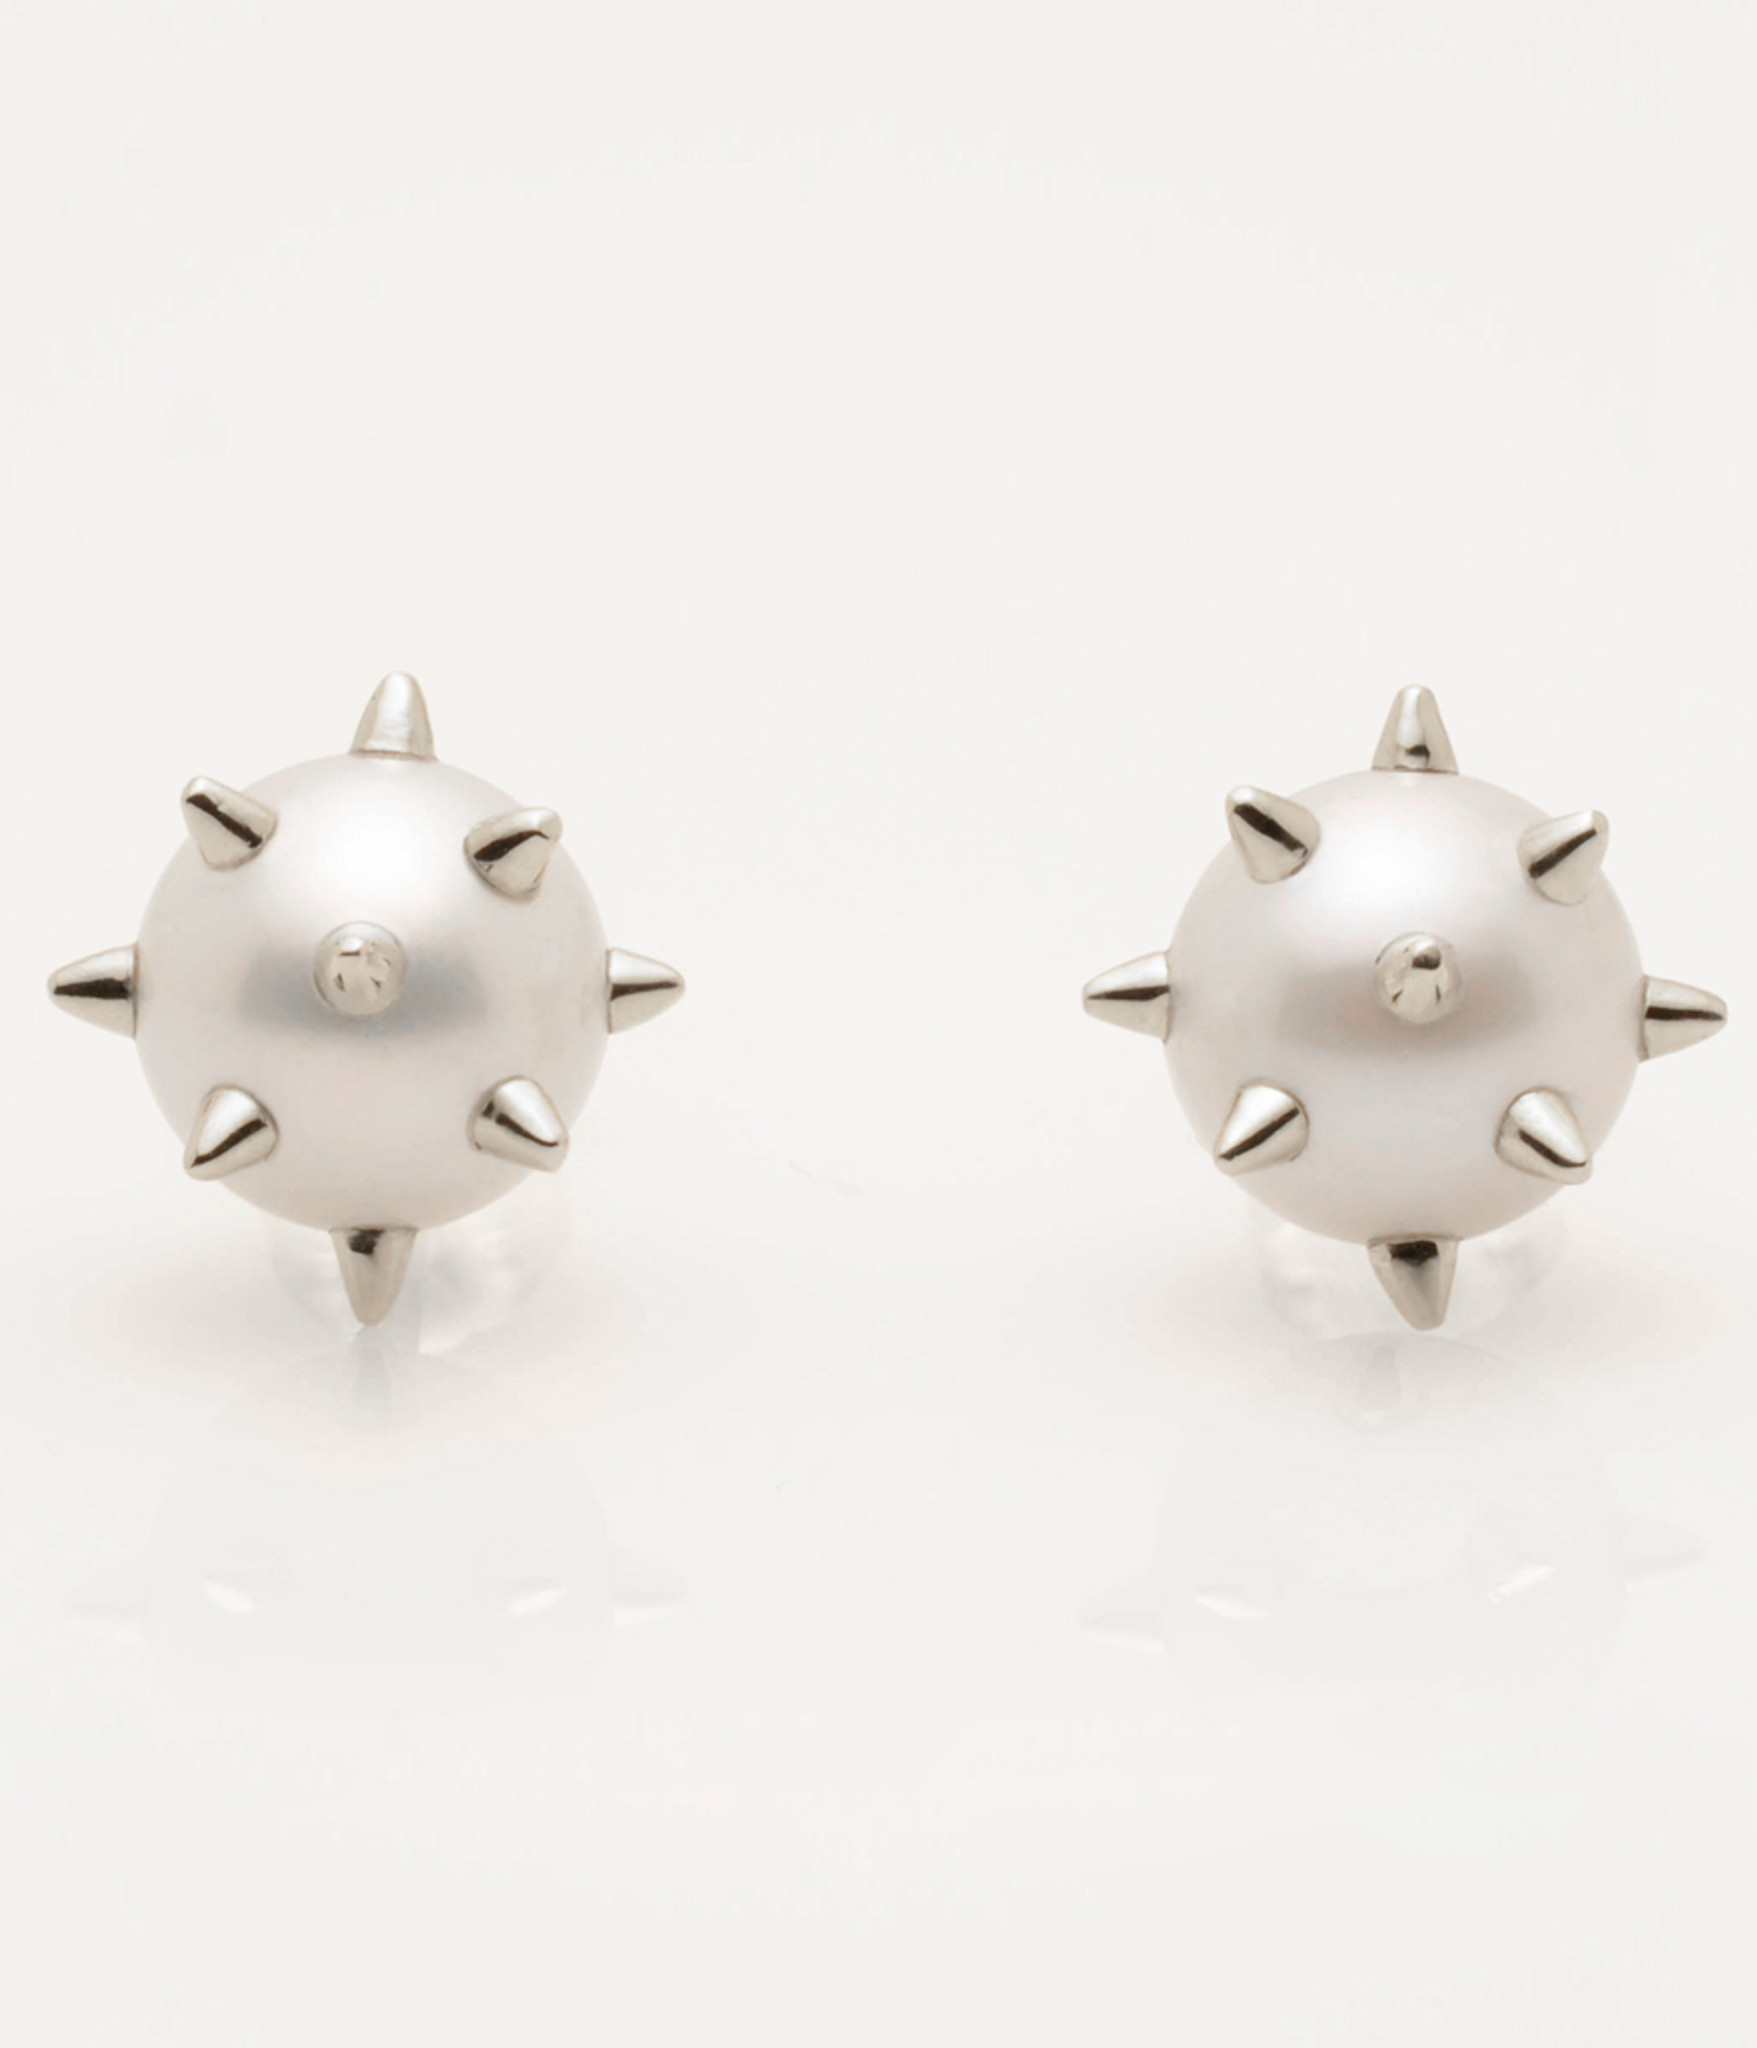 Cultured Freshwater Pearl Earrings With Sterling Silver Spikes & Post By  Jewelry Designer Nektar De Stagni